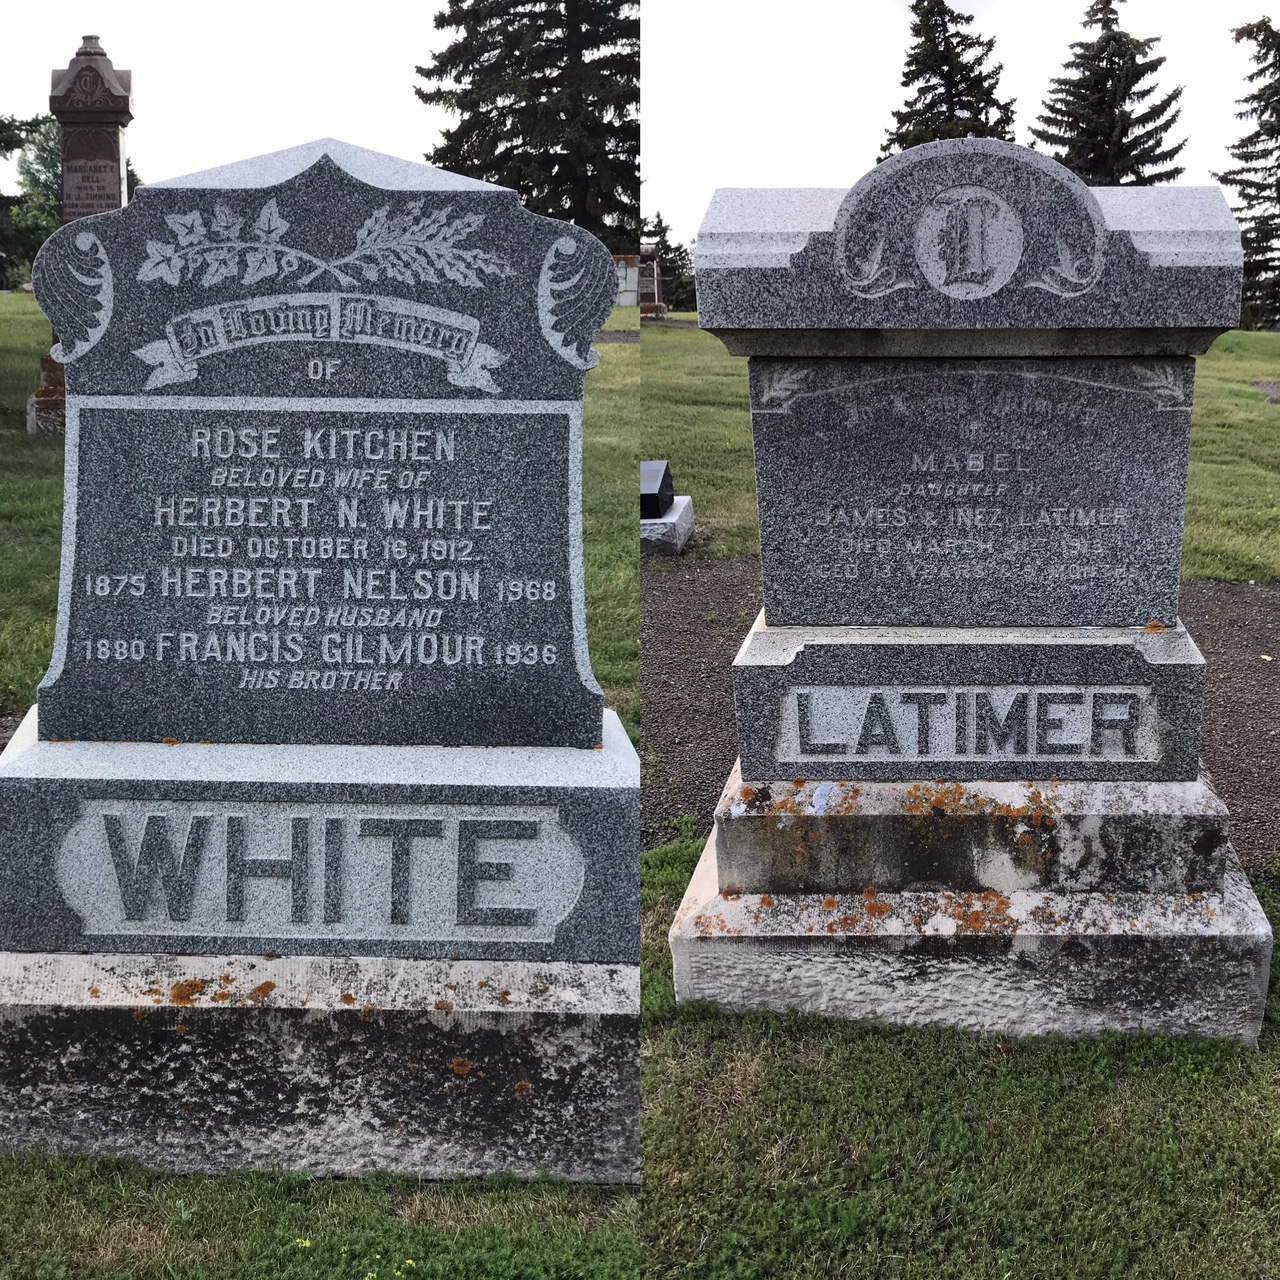 Went to explore a rock garden, found a cemetery and then this. Almost side by side were two similar graves one with my surname and one with that of our next door neighbour who we are very close to. Yikes….